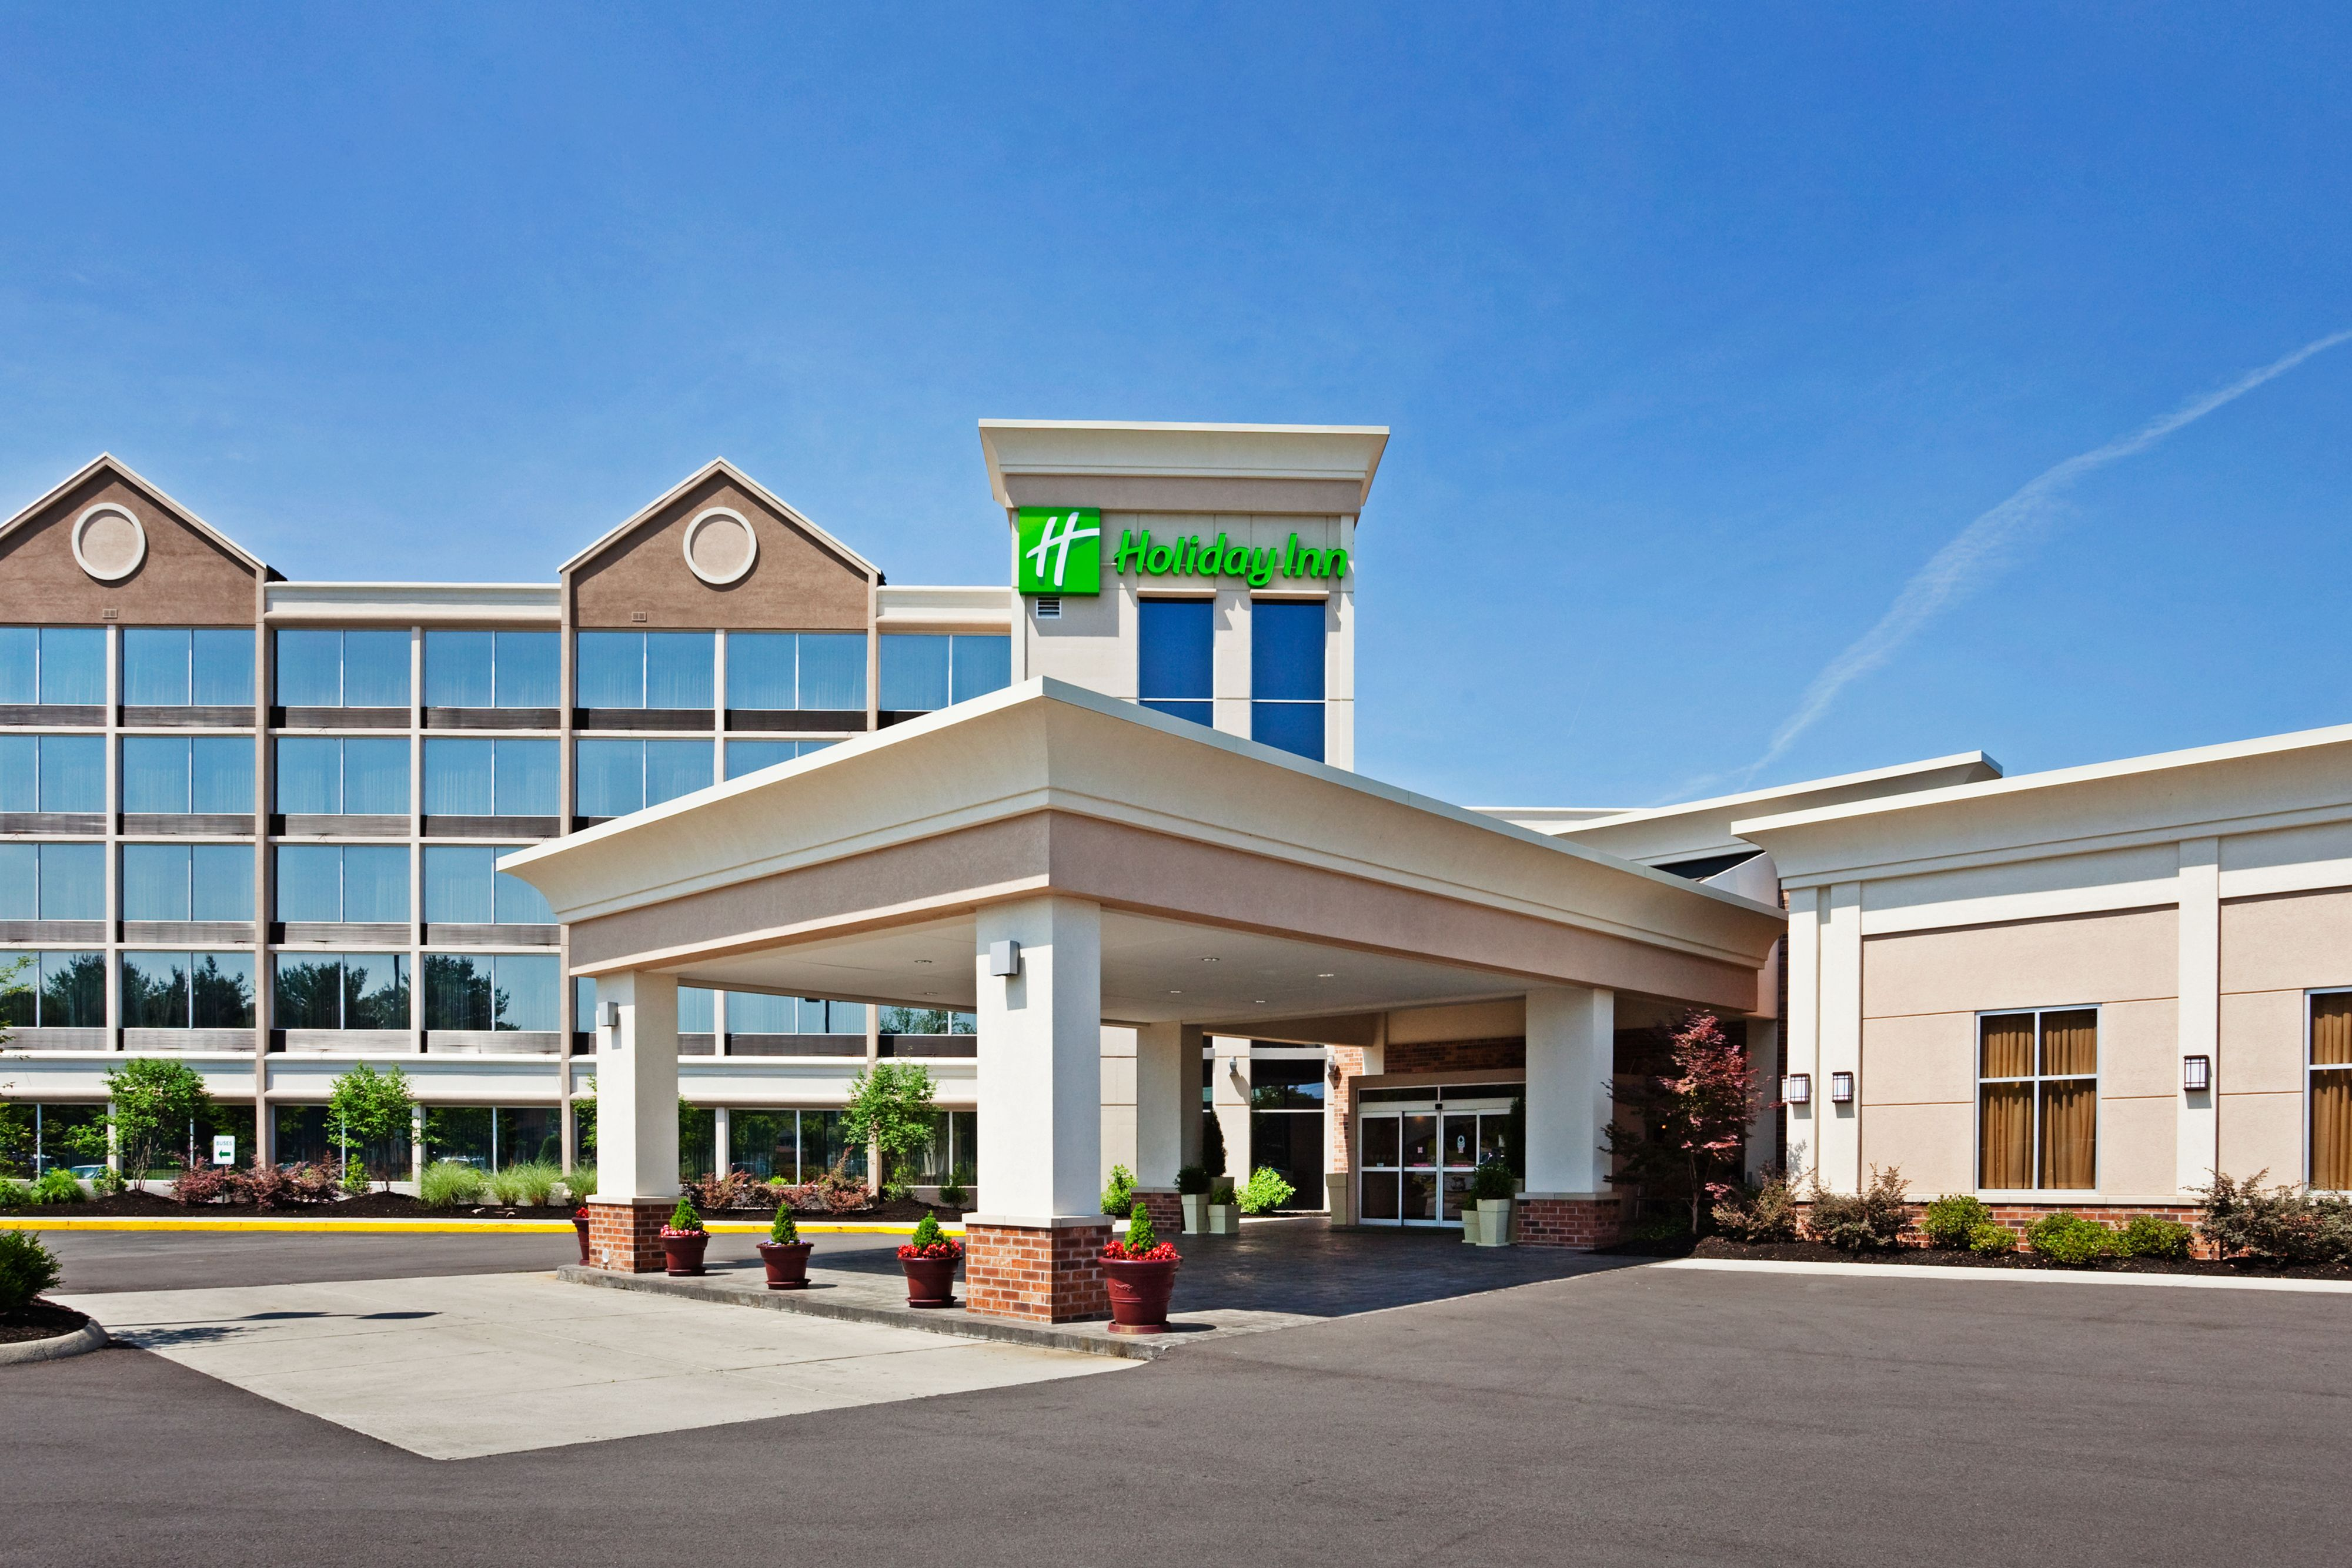 Holiday Inn Pigeon Forge Pigeon Forge Tennessee Tn